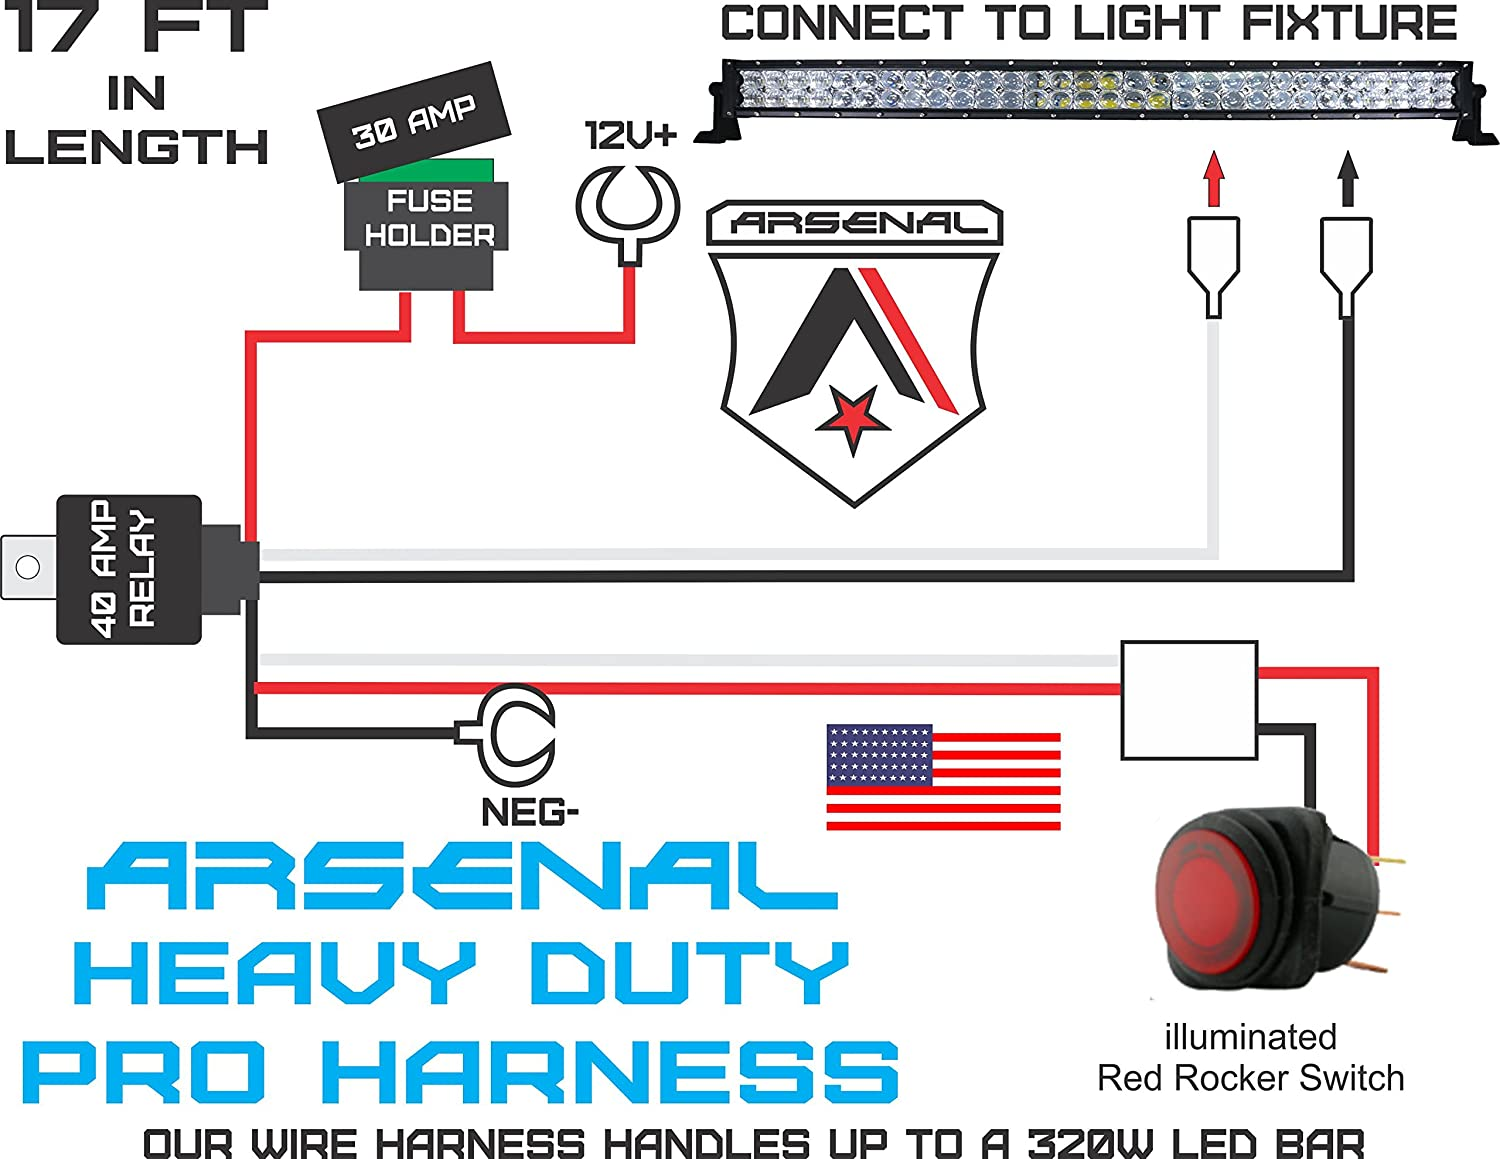 1 Pro Heavy Duty Led Light Bar Wire Harness By Arsenal Fog Lights Wiring For Utv Offroad 40 Amp Relay Red Round Rocker Switch 17ft Of 14 Guage Suv